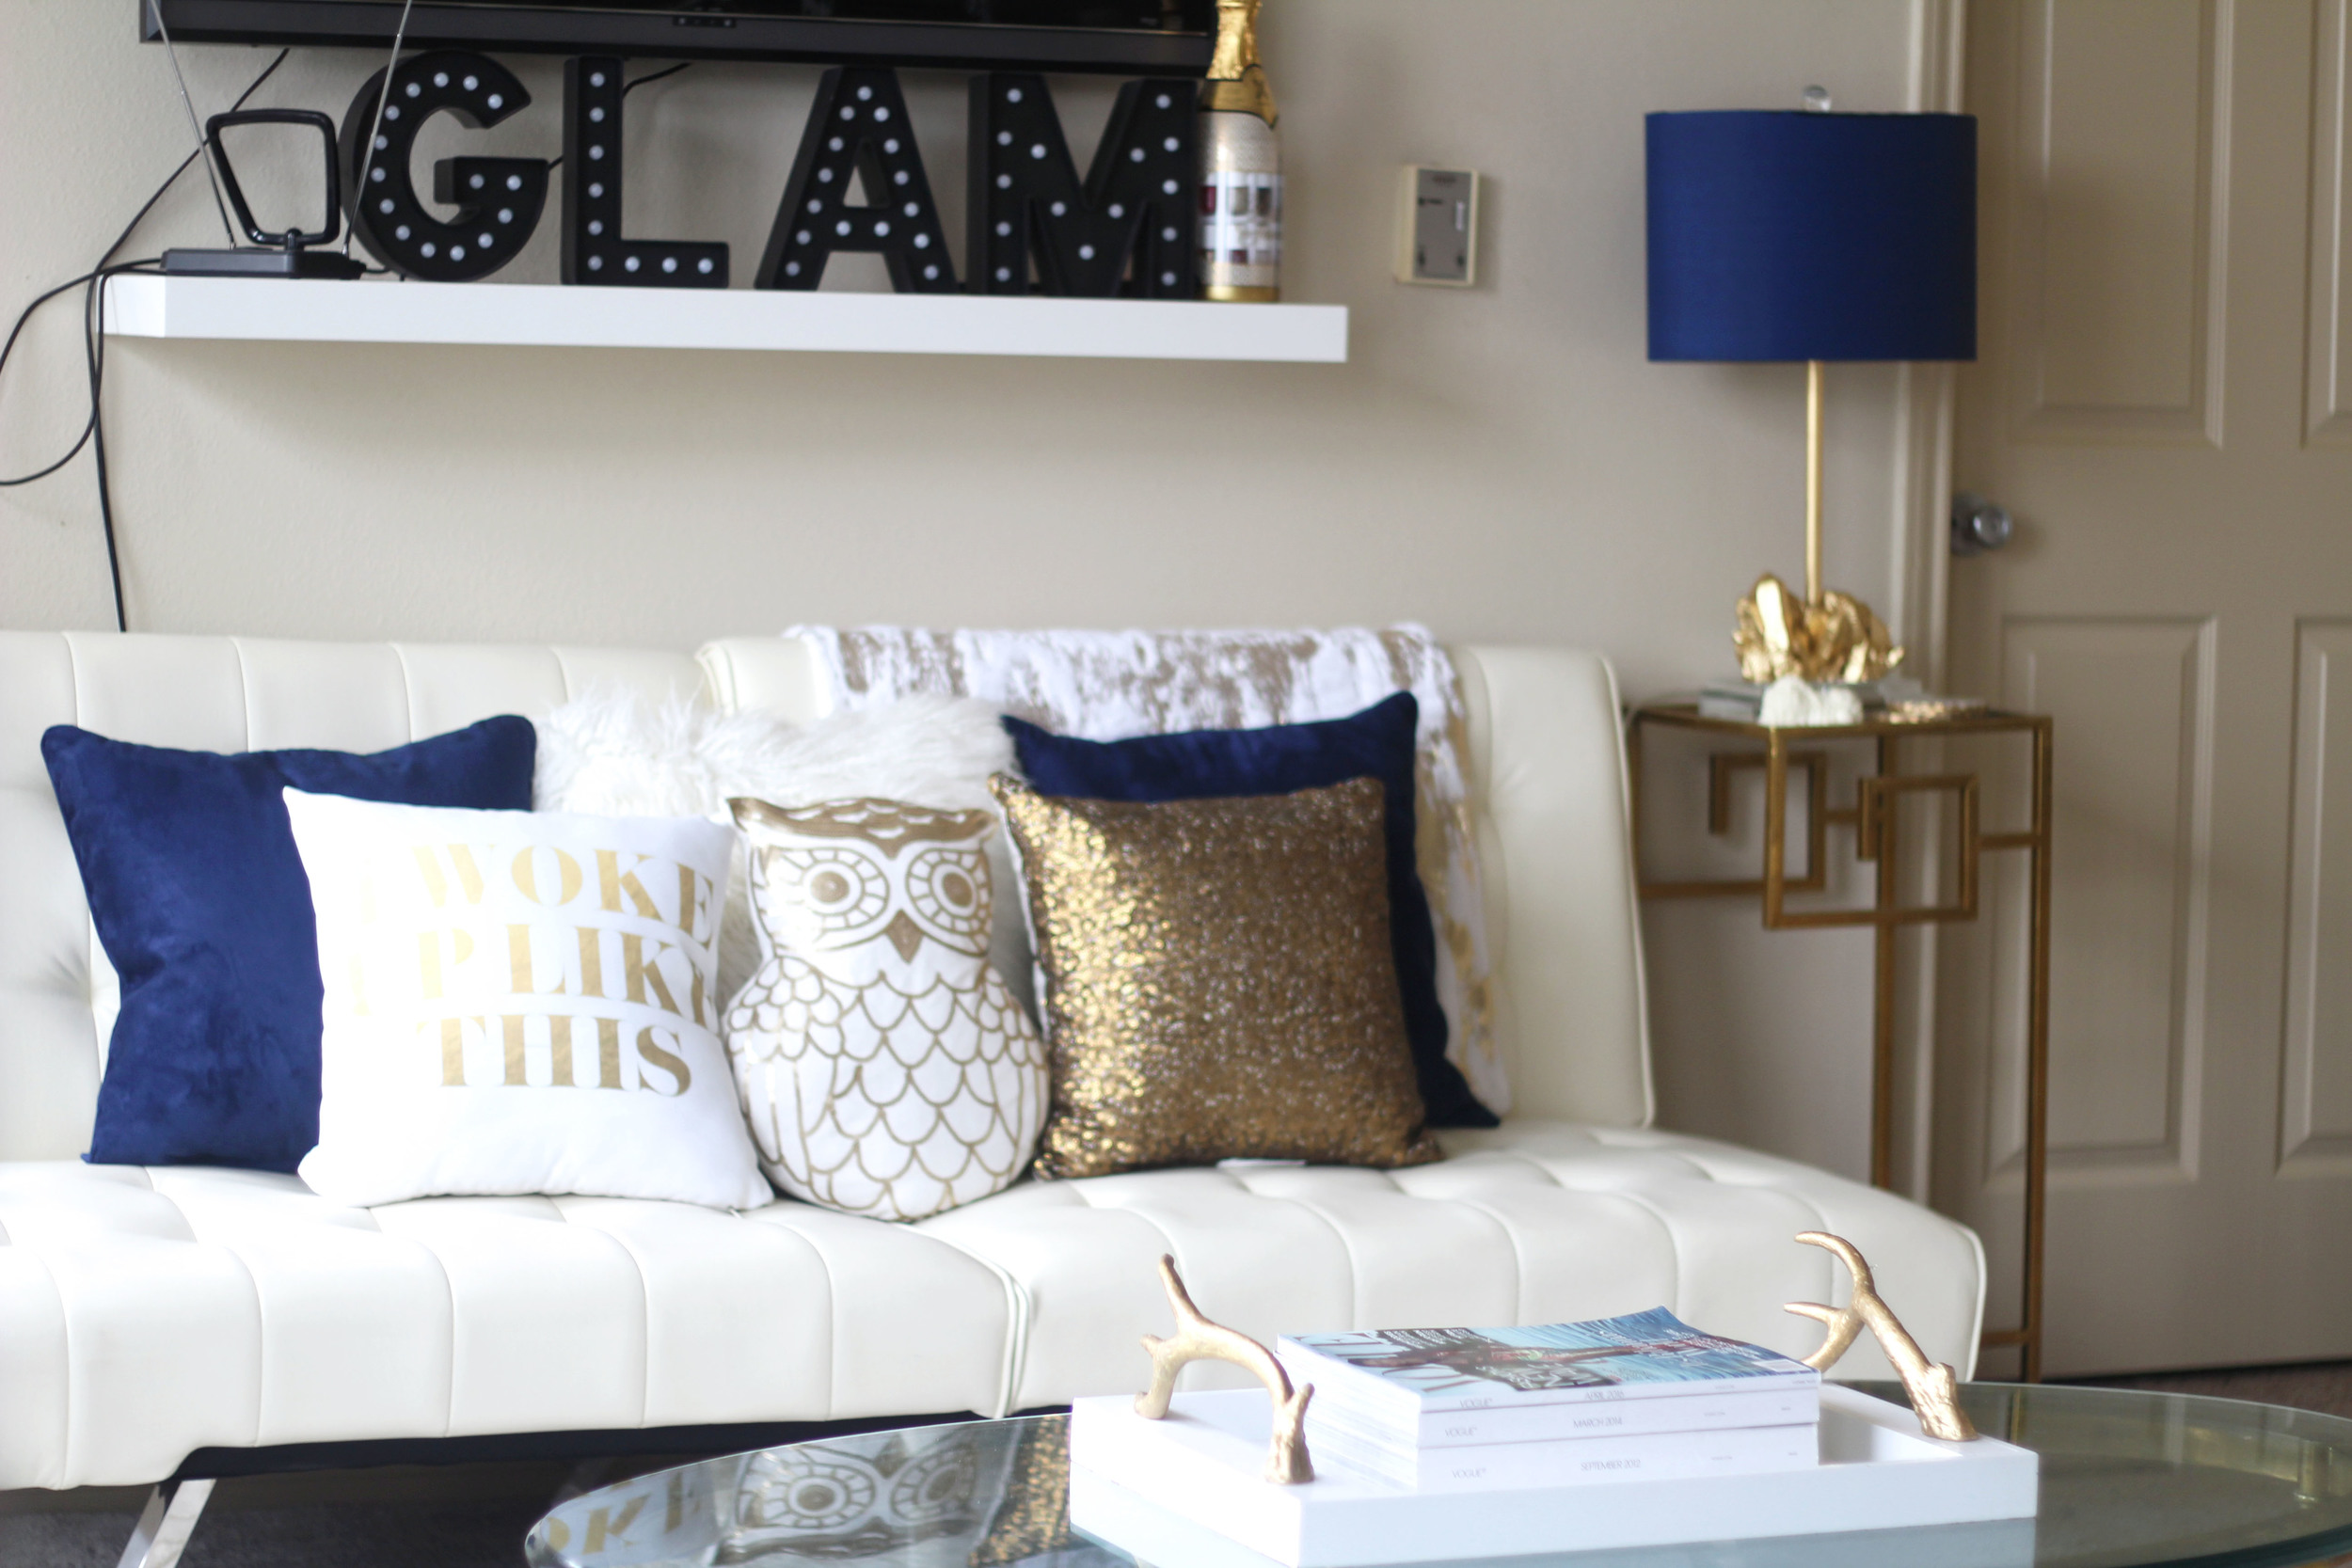 6 Easy Ways To Update Accent Decor | Royal Blue + Gold